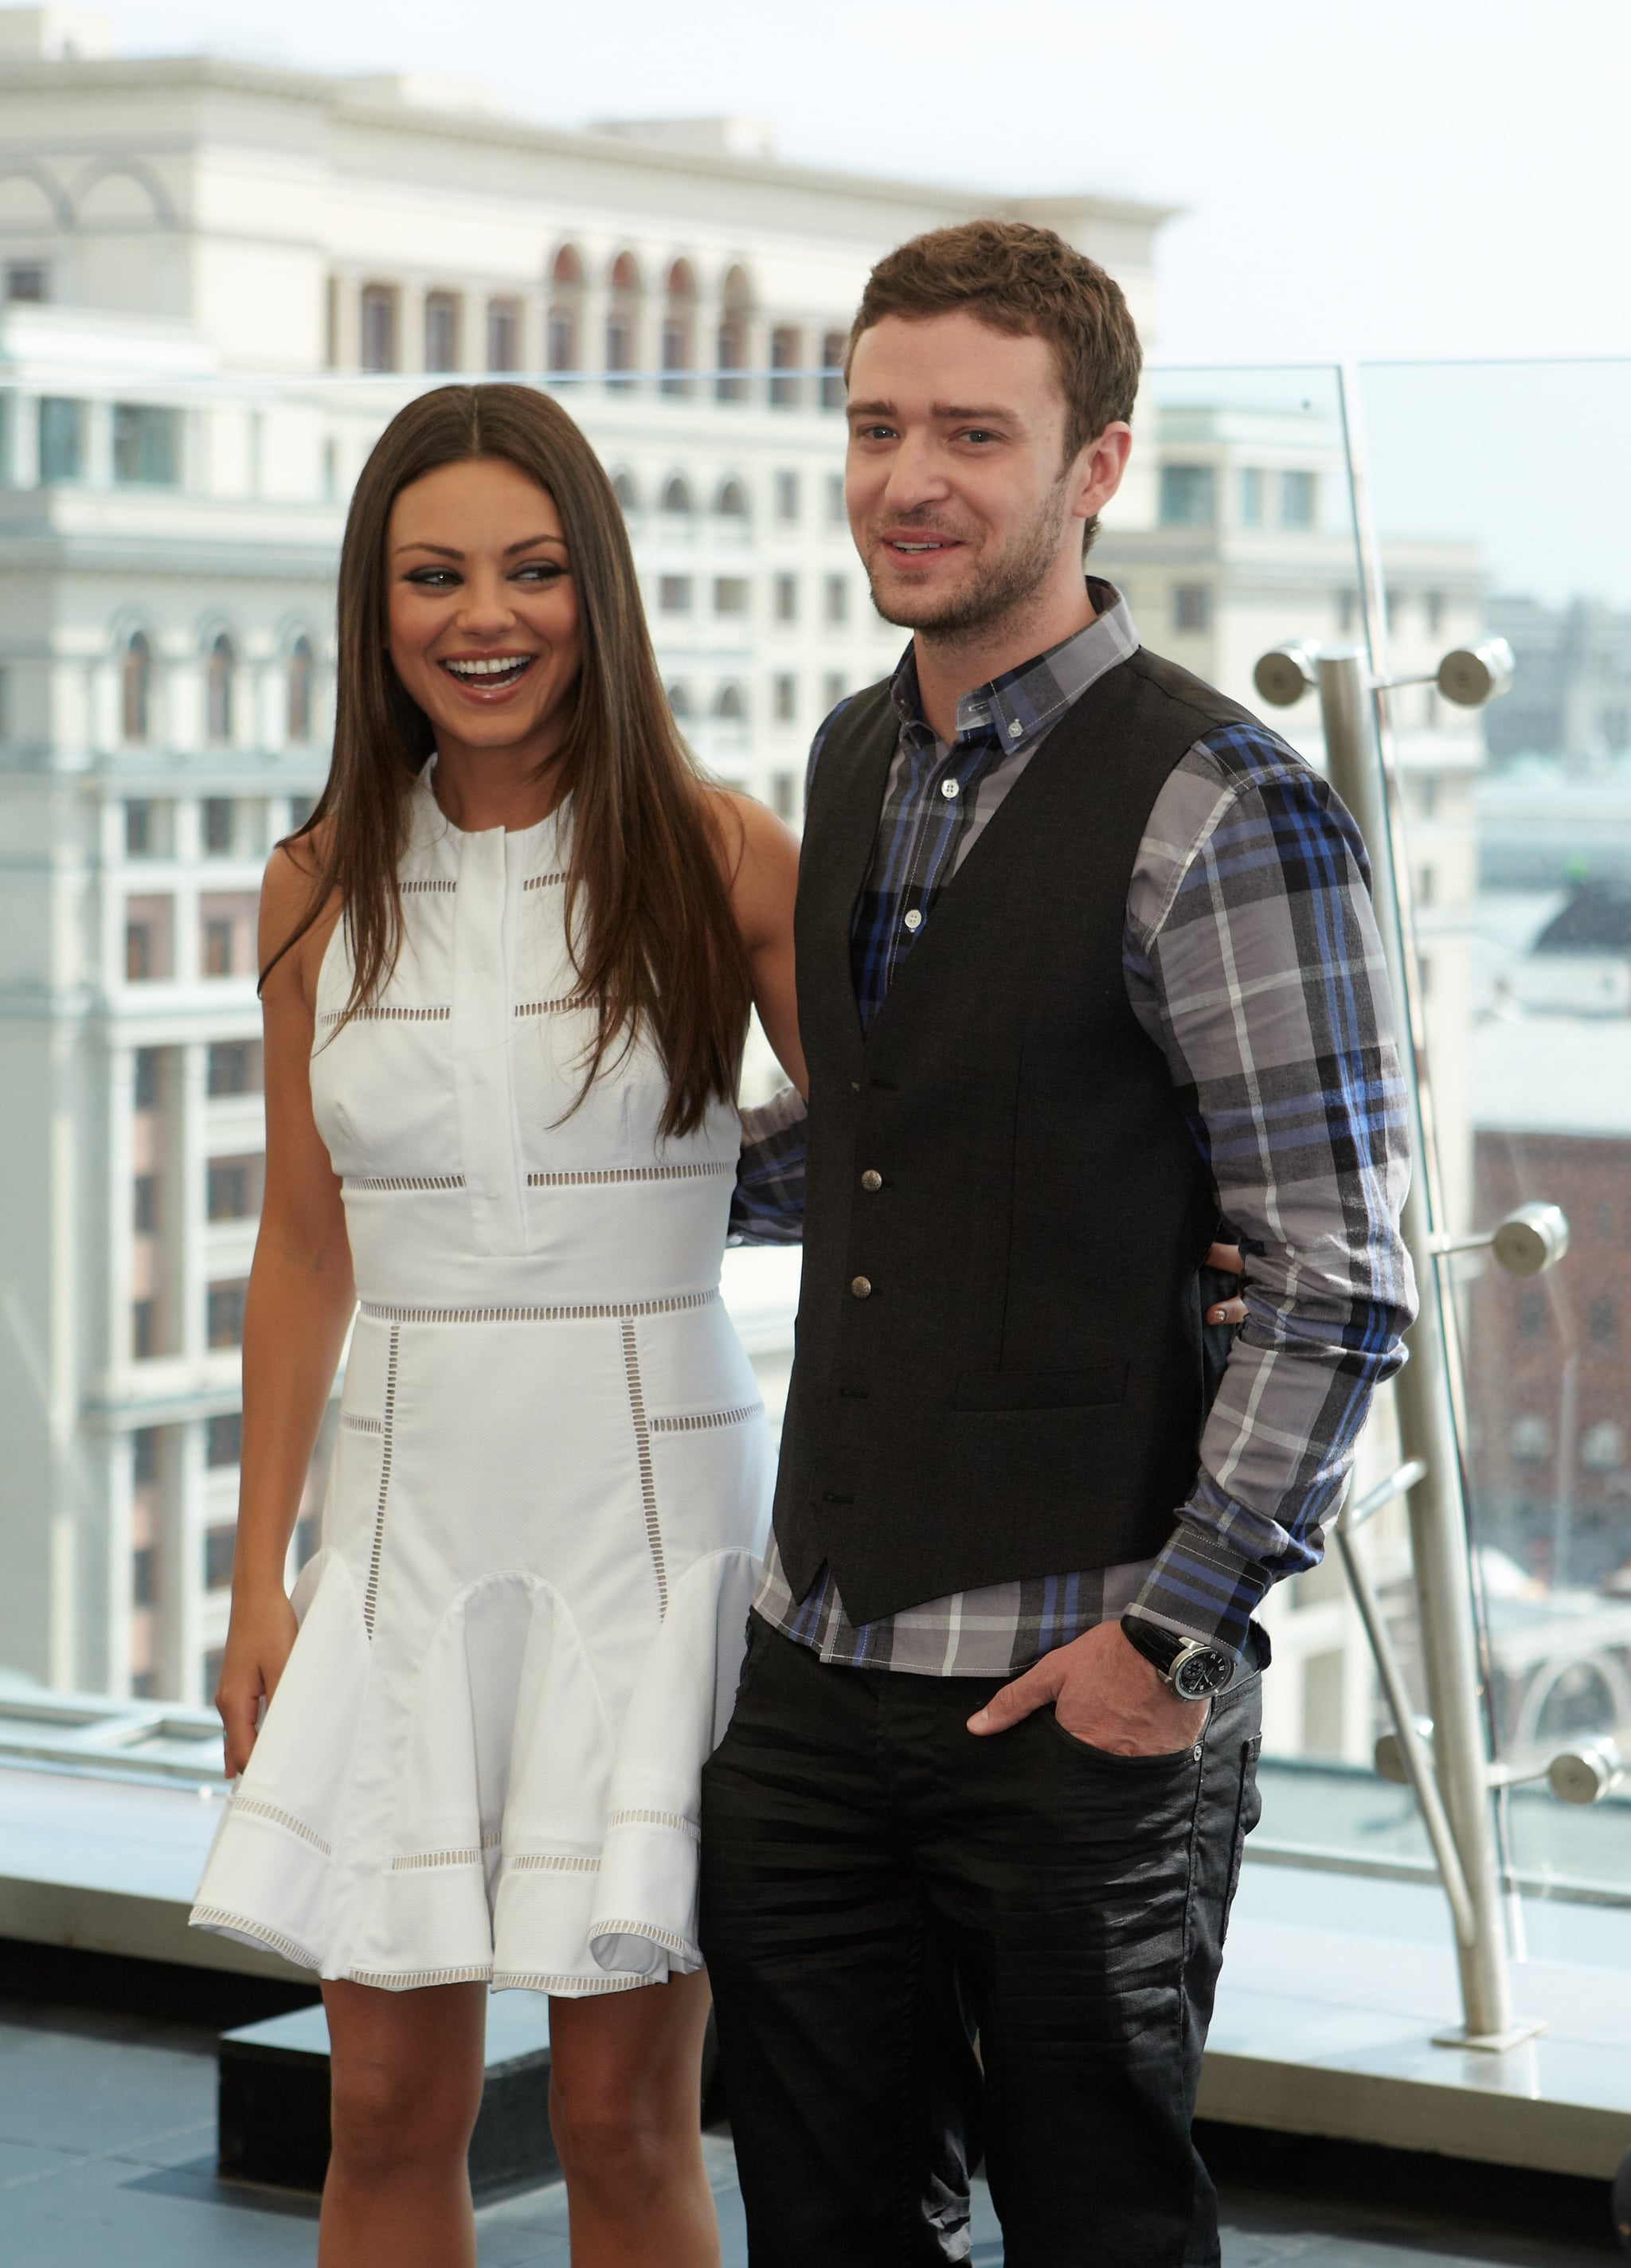 Justin Timberlake and Mila Kunis in Russia.